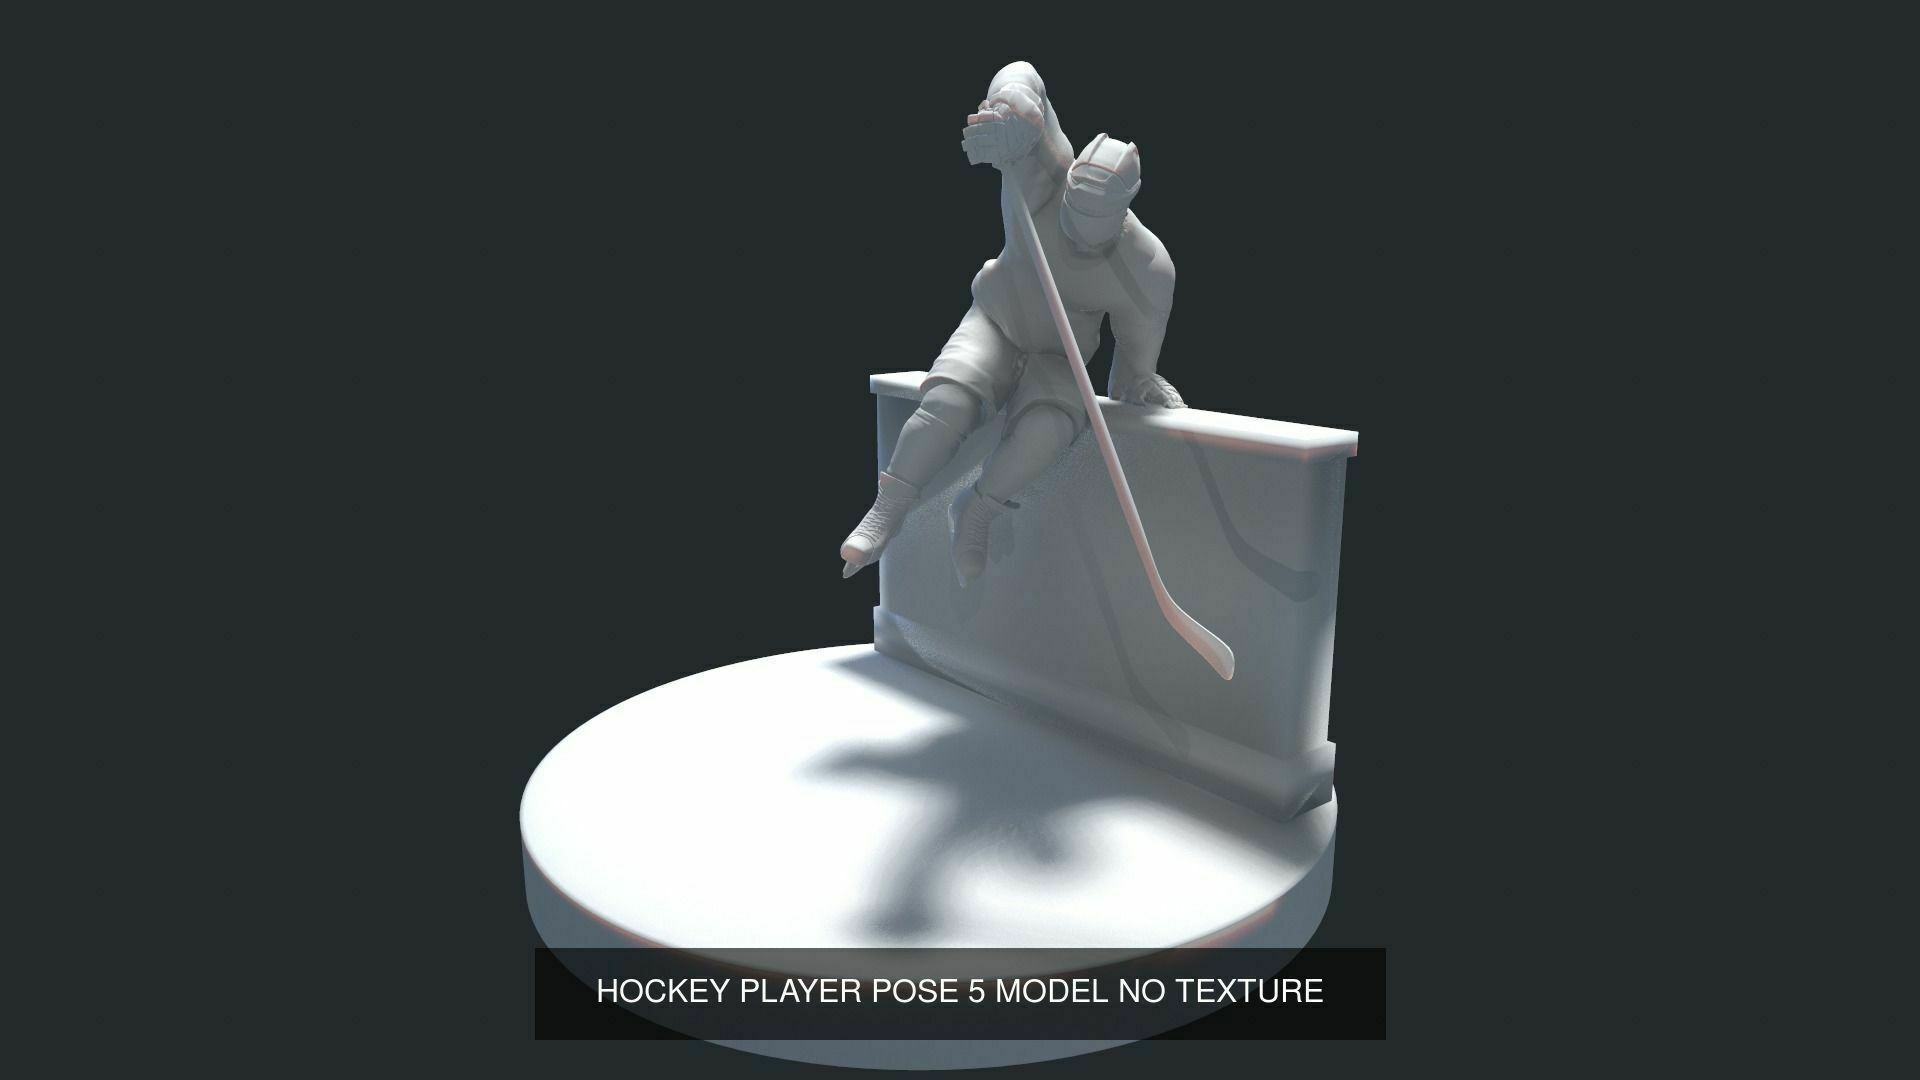 ultimate-hockey-poses-pack-model-no-texture-3d-model-max-obj-fbx-stl-tbscene (17).jpg Download OBJ file ULTIMATE HOCKEY POSES PACK MODEL NO TEXTURE 3D Model Collection • 3D printing template, NightCreativity